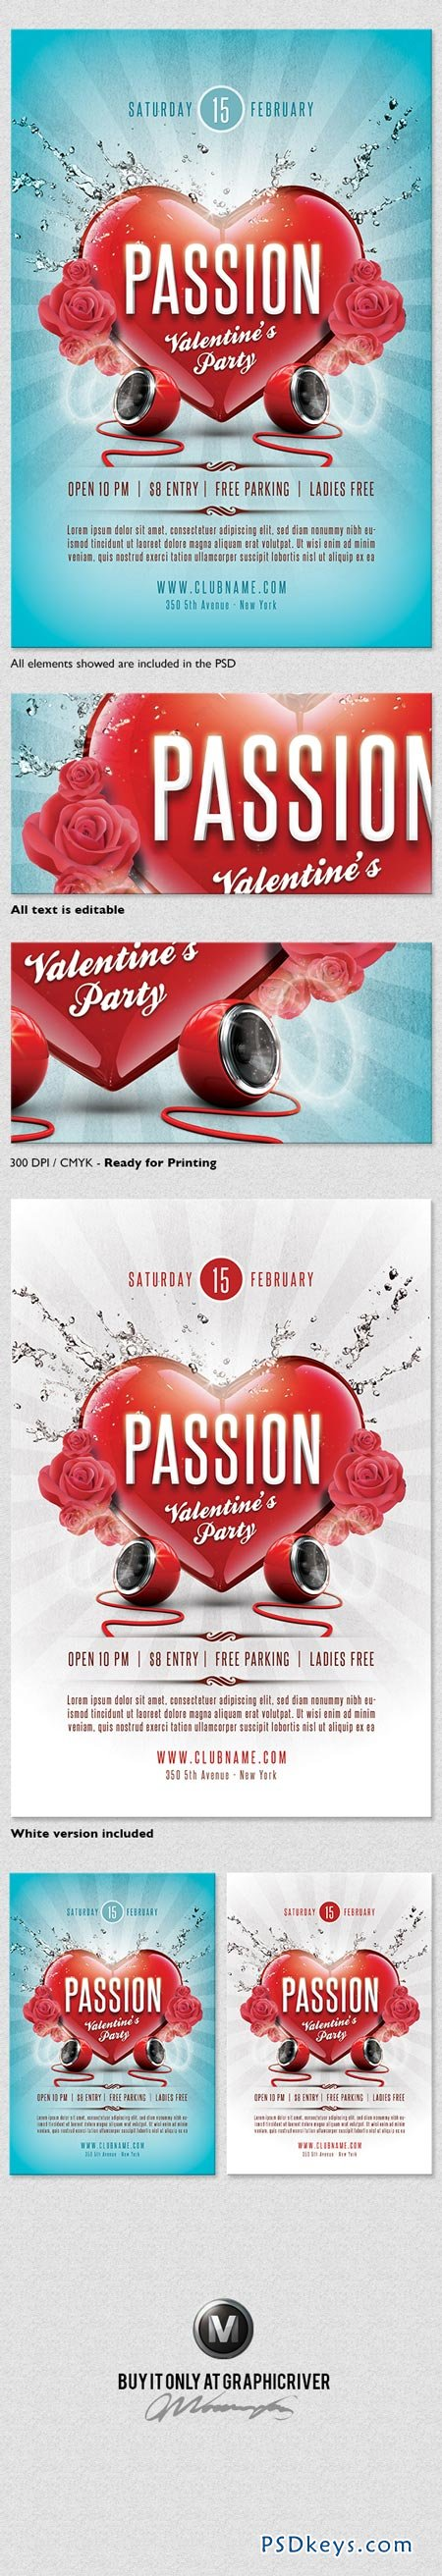 Passion Valentines Flyer Template 3772728